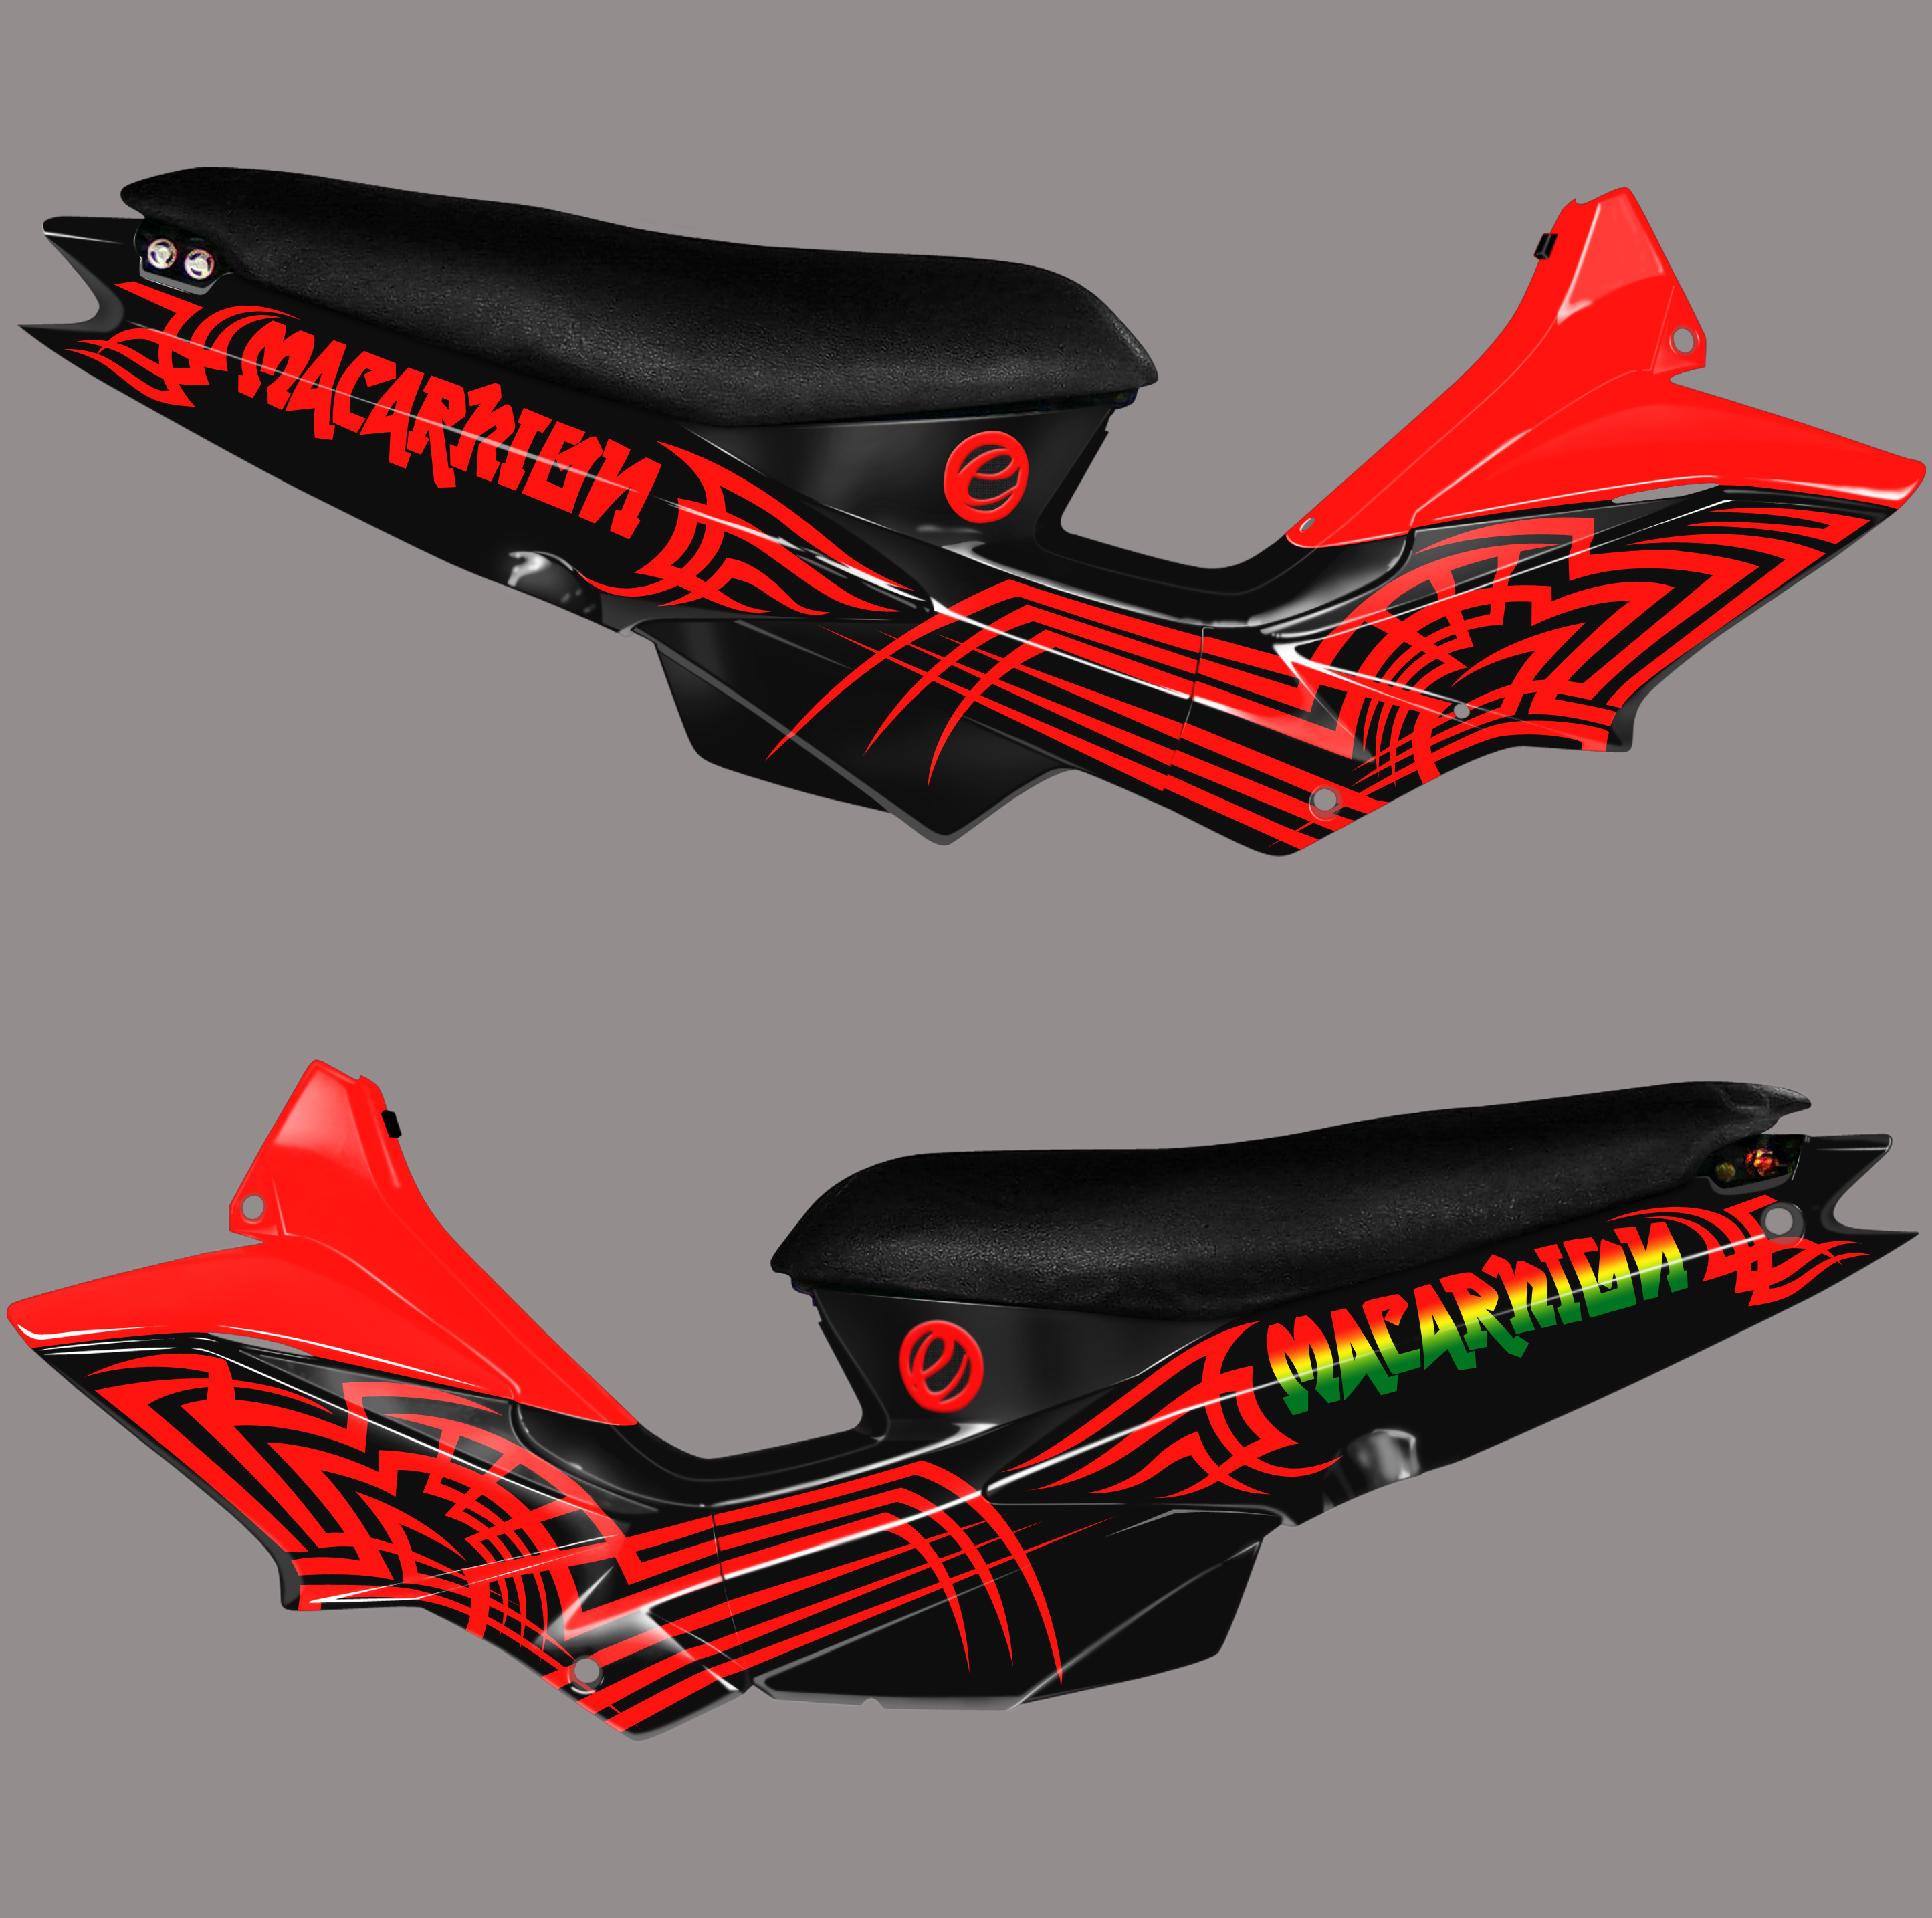 Xrm Cowling Sticker